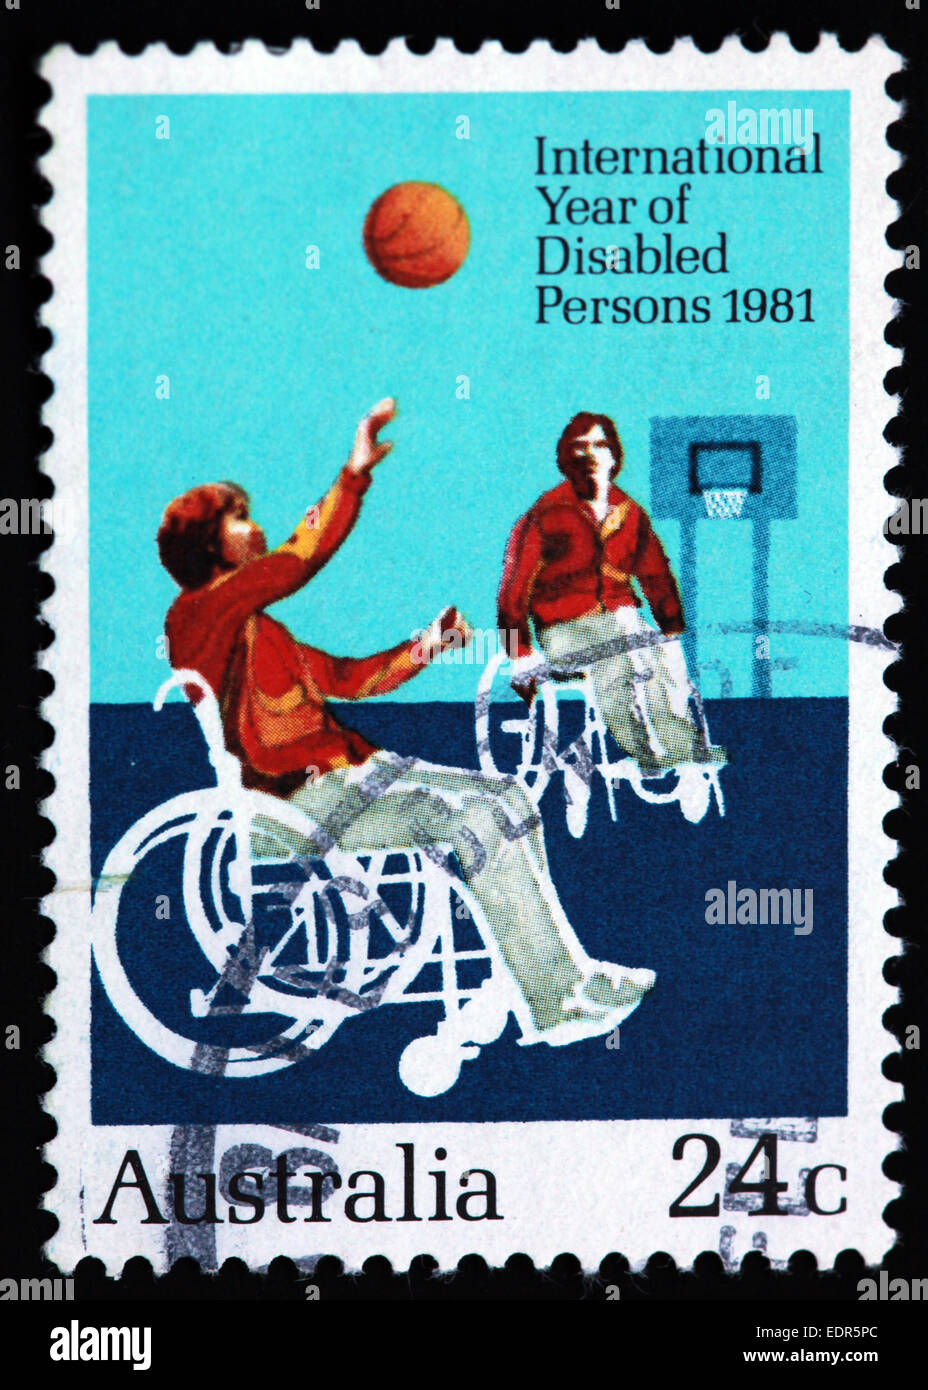 Used and postmarked Australia / Austrailian Stamp 24c 1981 International Year of Disabled Persons Wheelchair Basketball - Stock Image